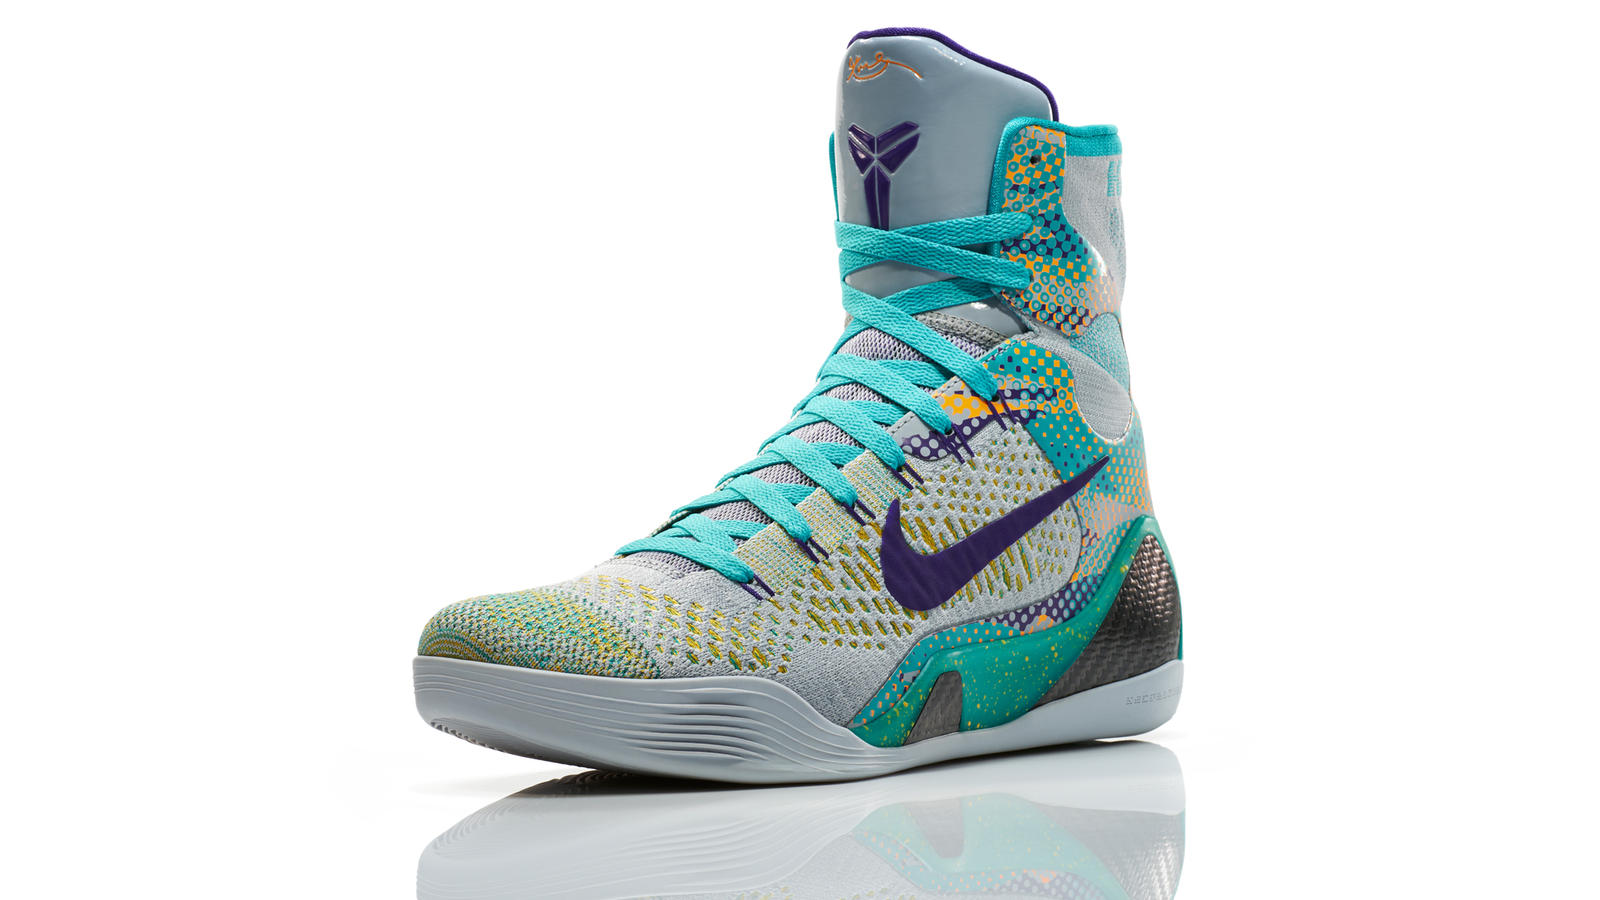 kobe9_unleashed_005_3qtr_16891_fb